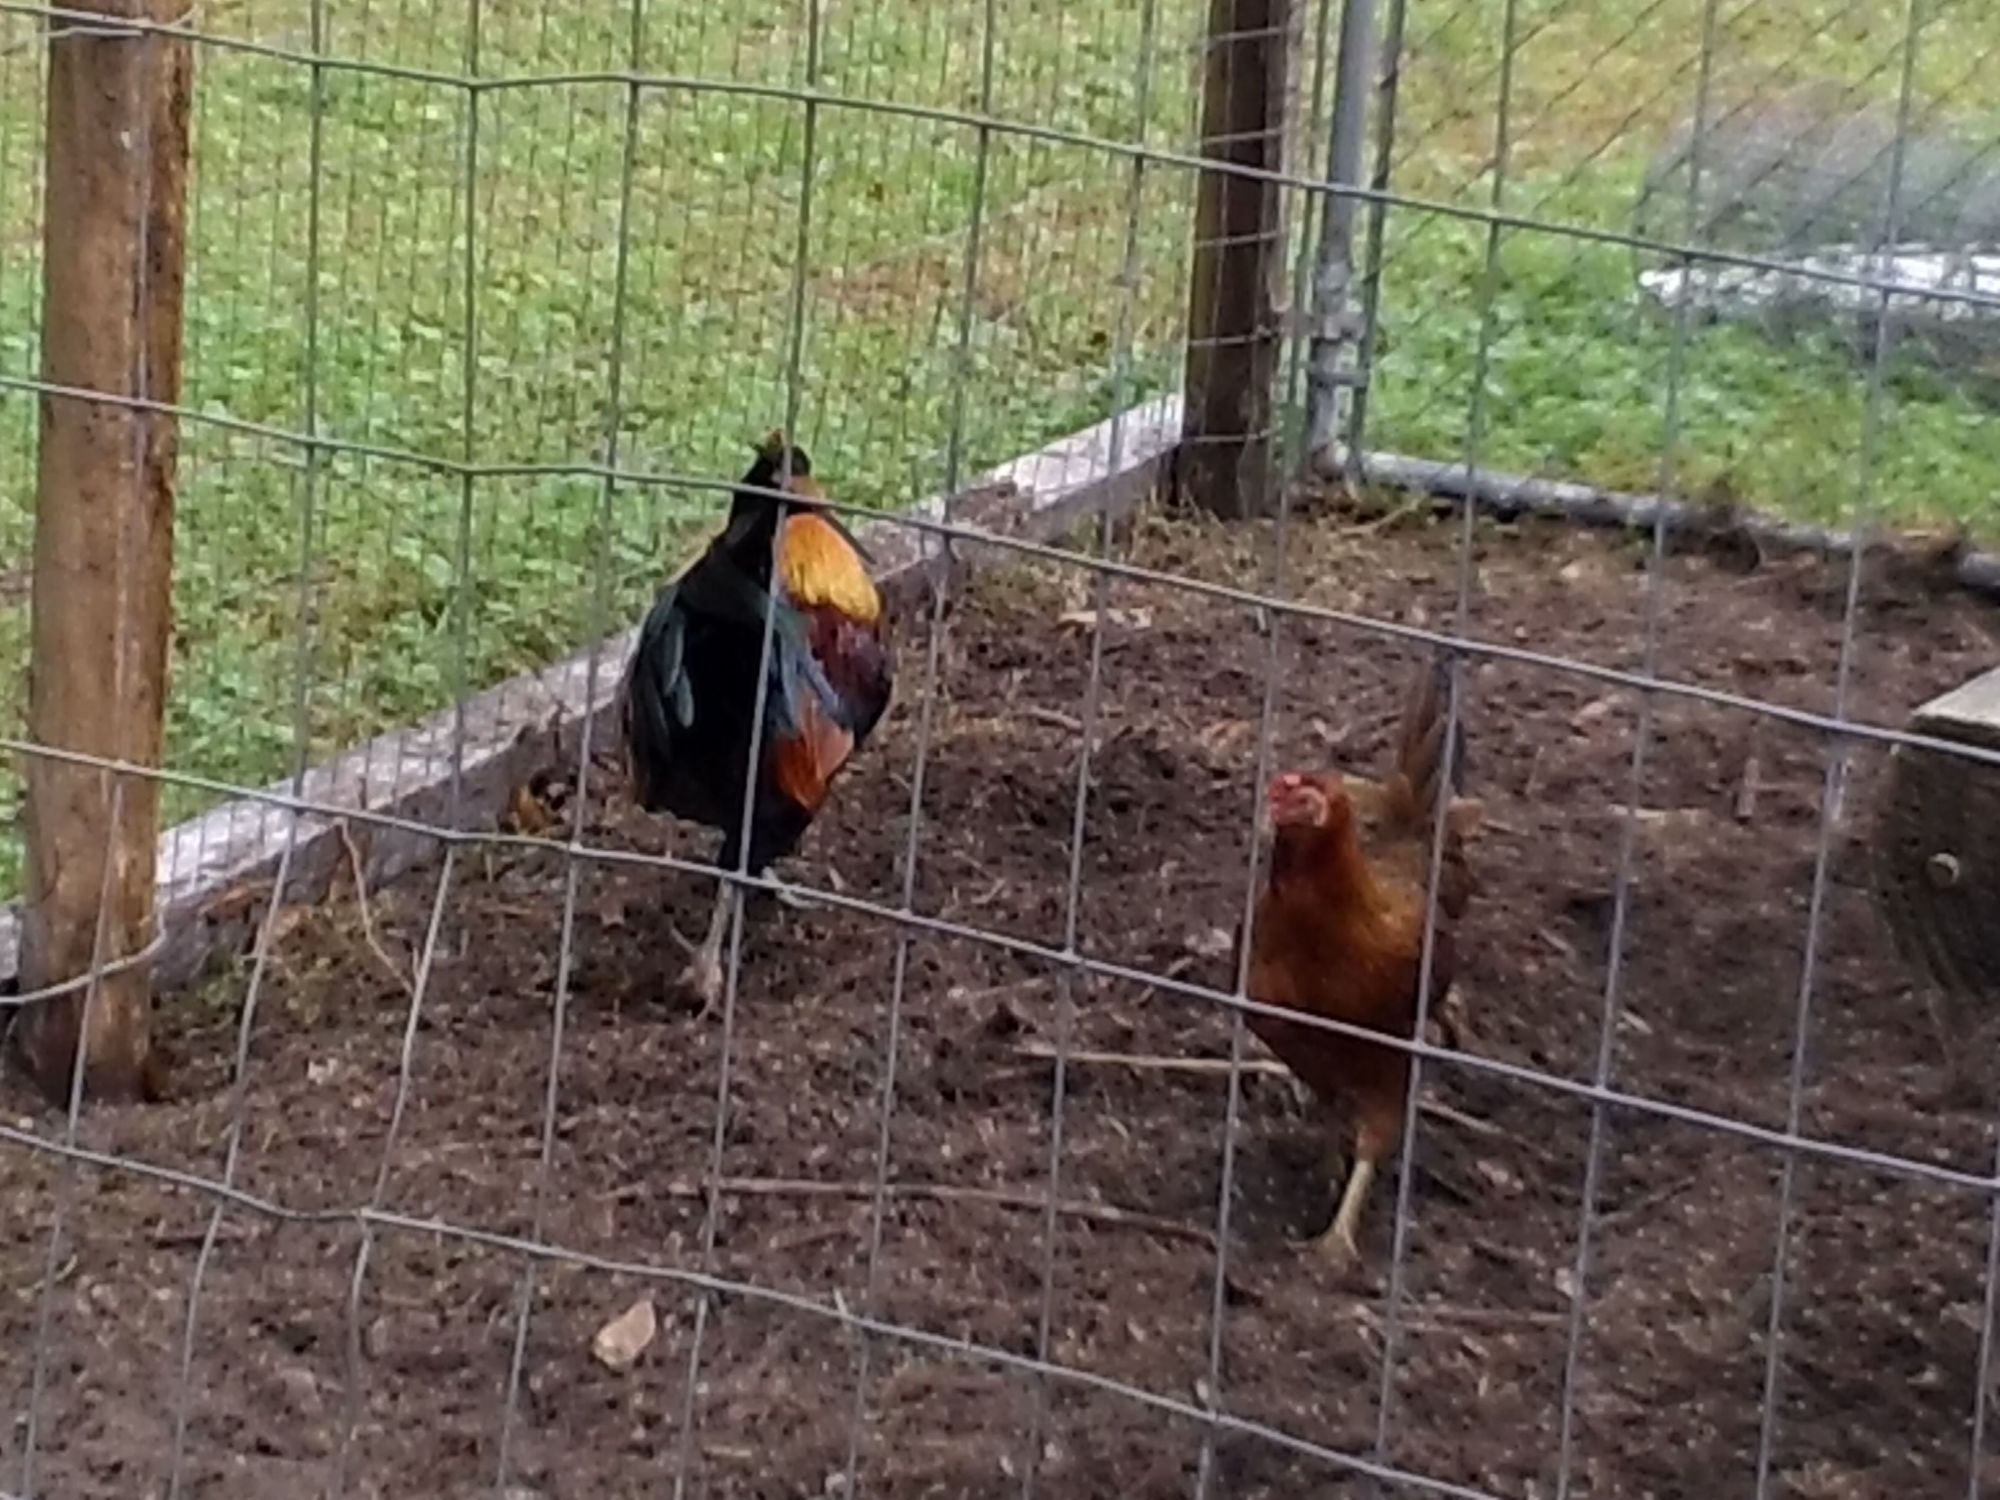 Benny and Hen